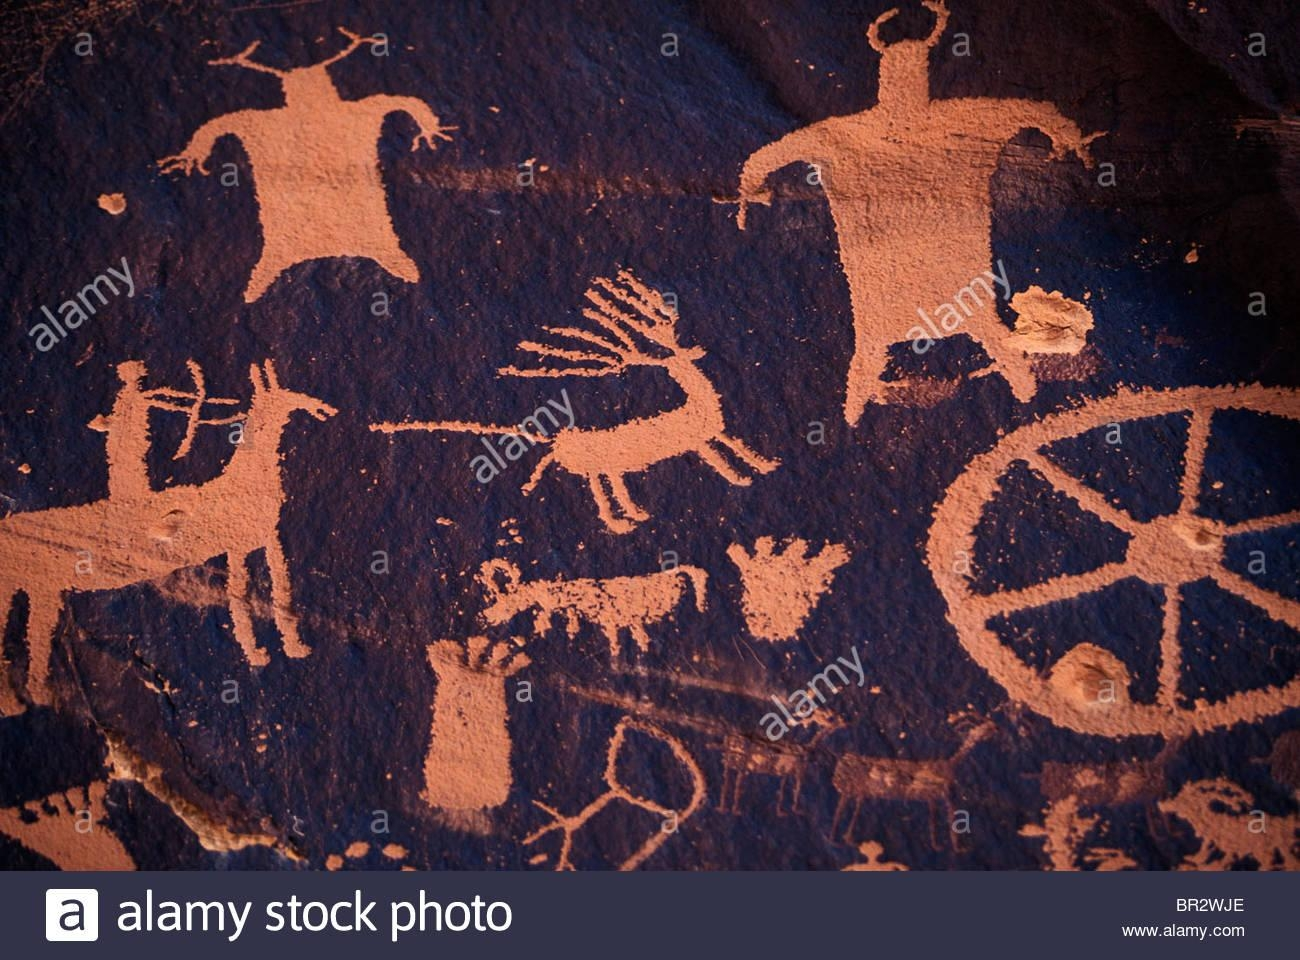 Native American Cave Art/wall Drawings Stock Photo, Royalty Free Within Native American Wall Art (View 19 of 20)